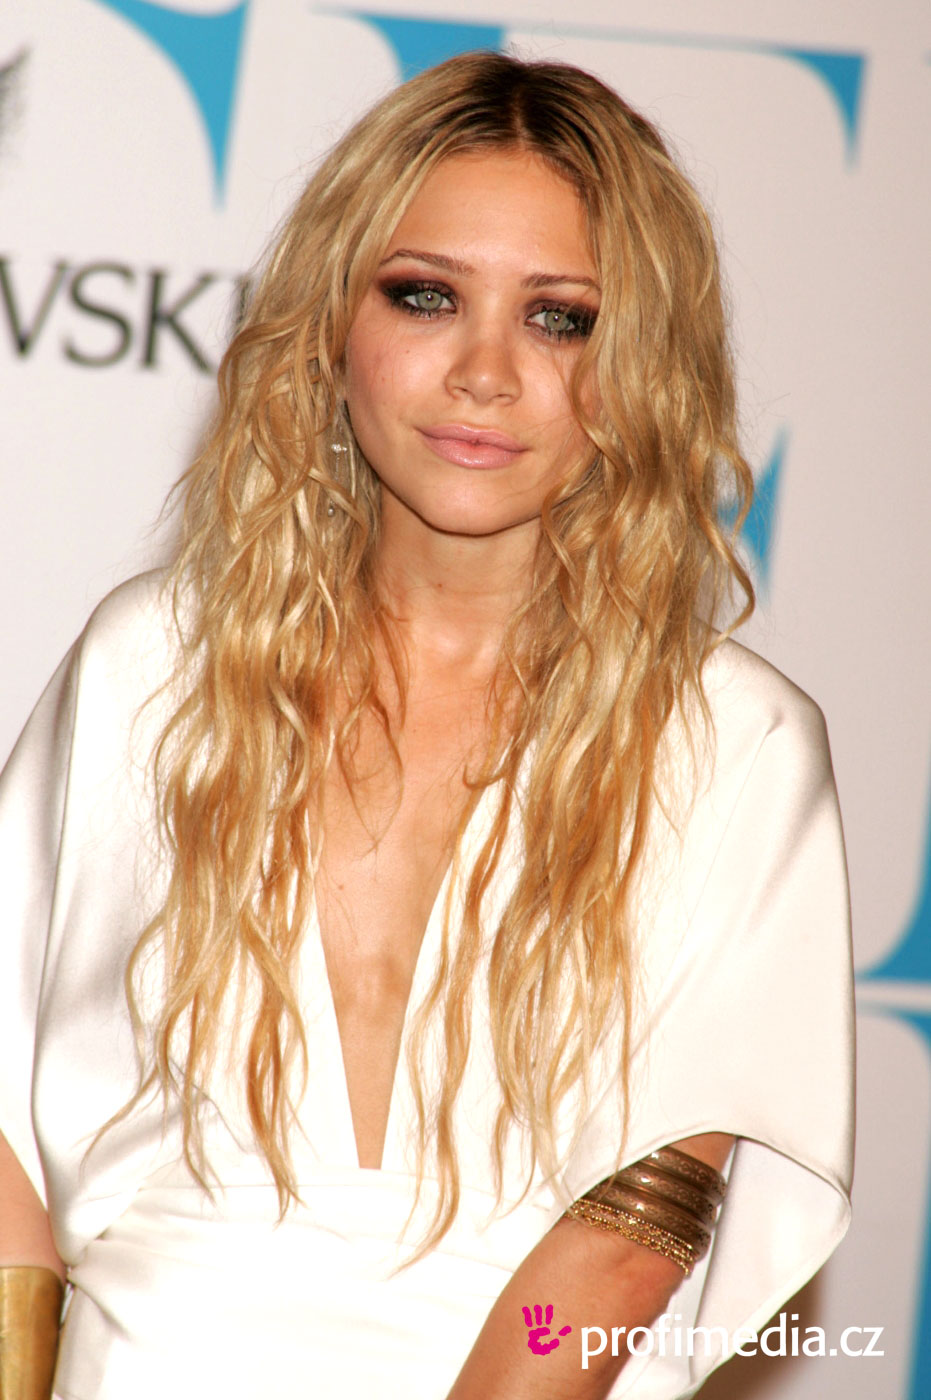 Účes celebrity mary kate olsen